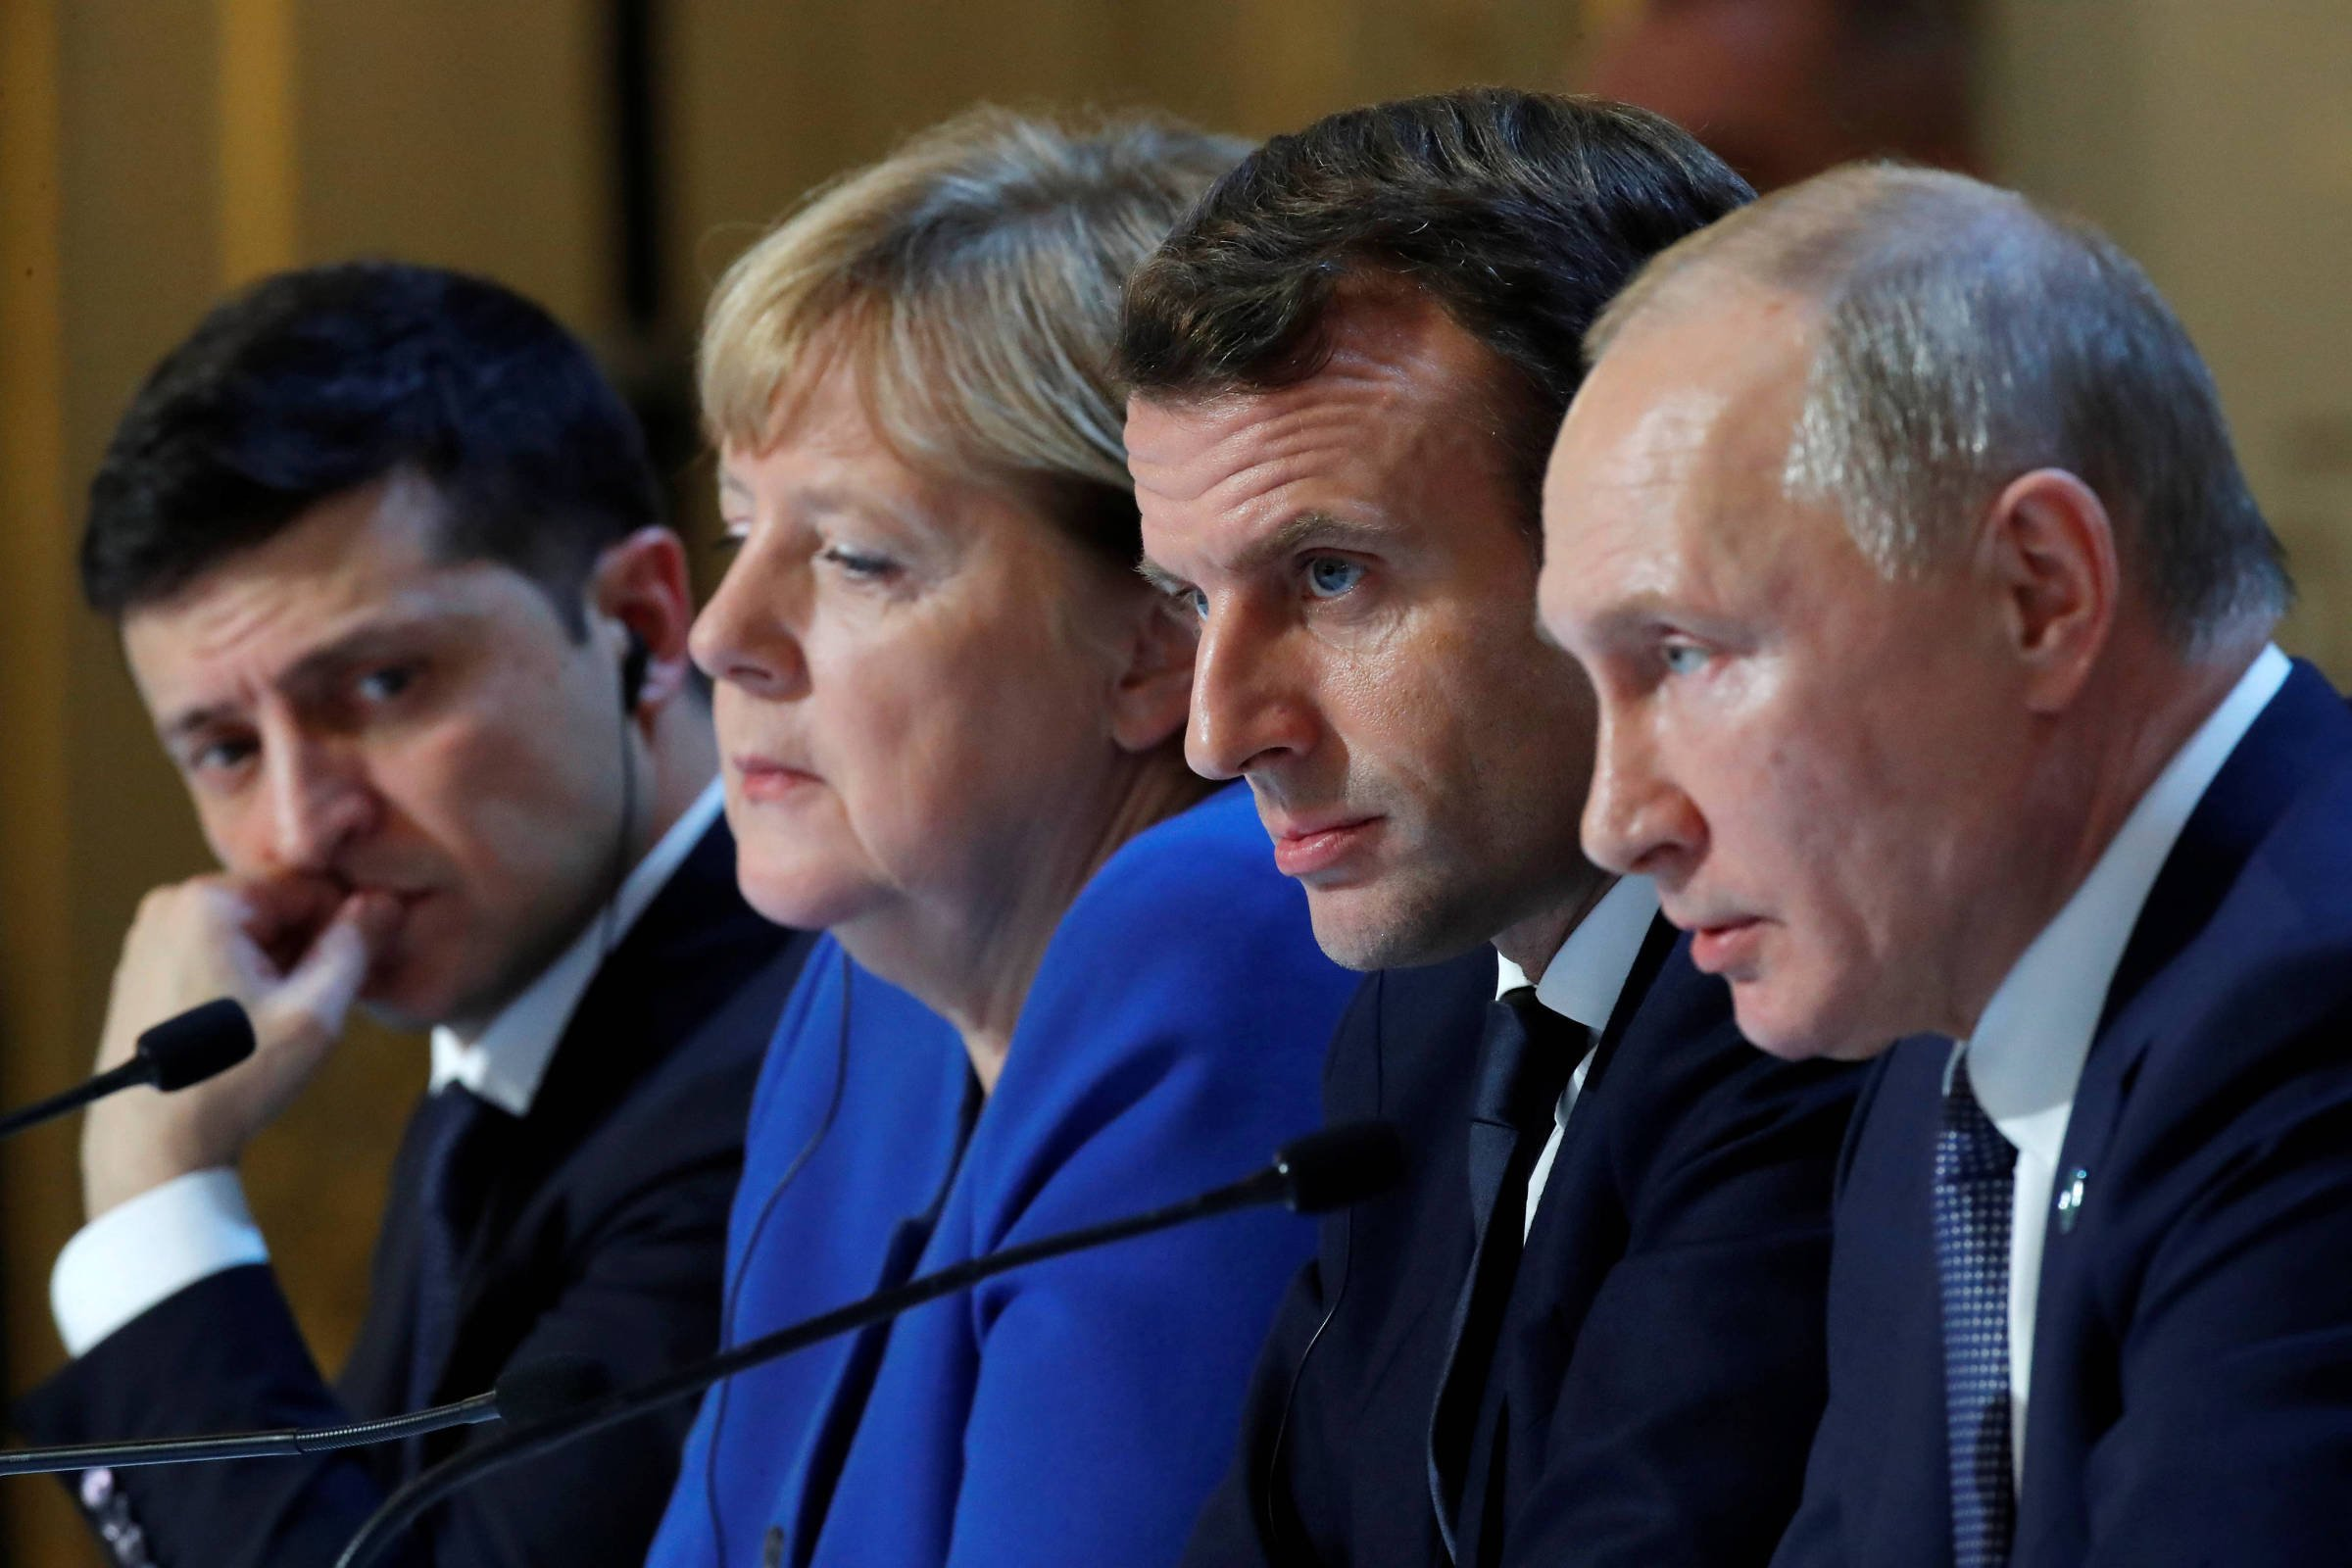 Putin and Zelenski hold their first face-to-face meeting in Paris